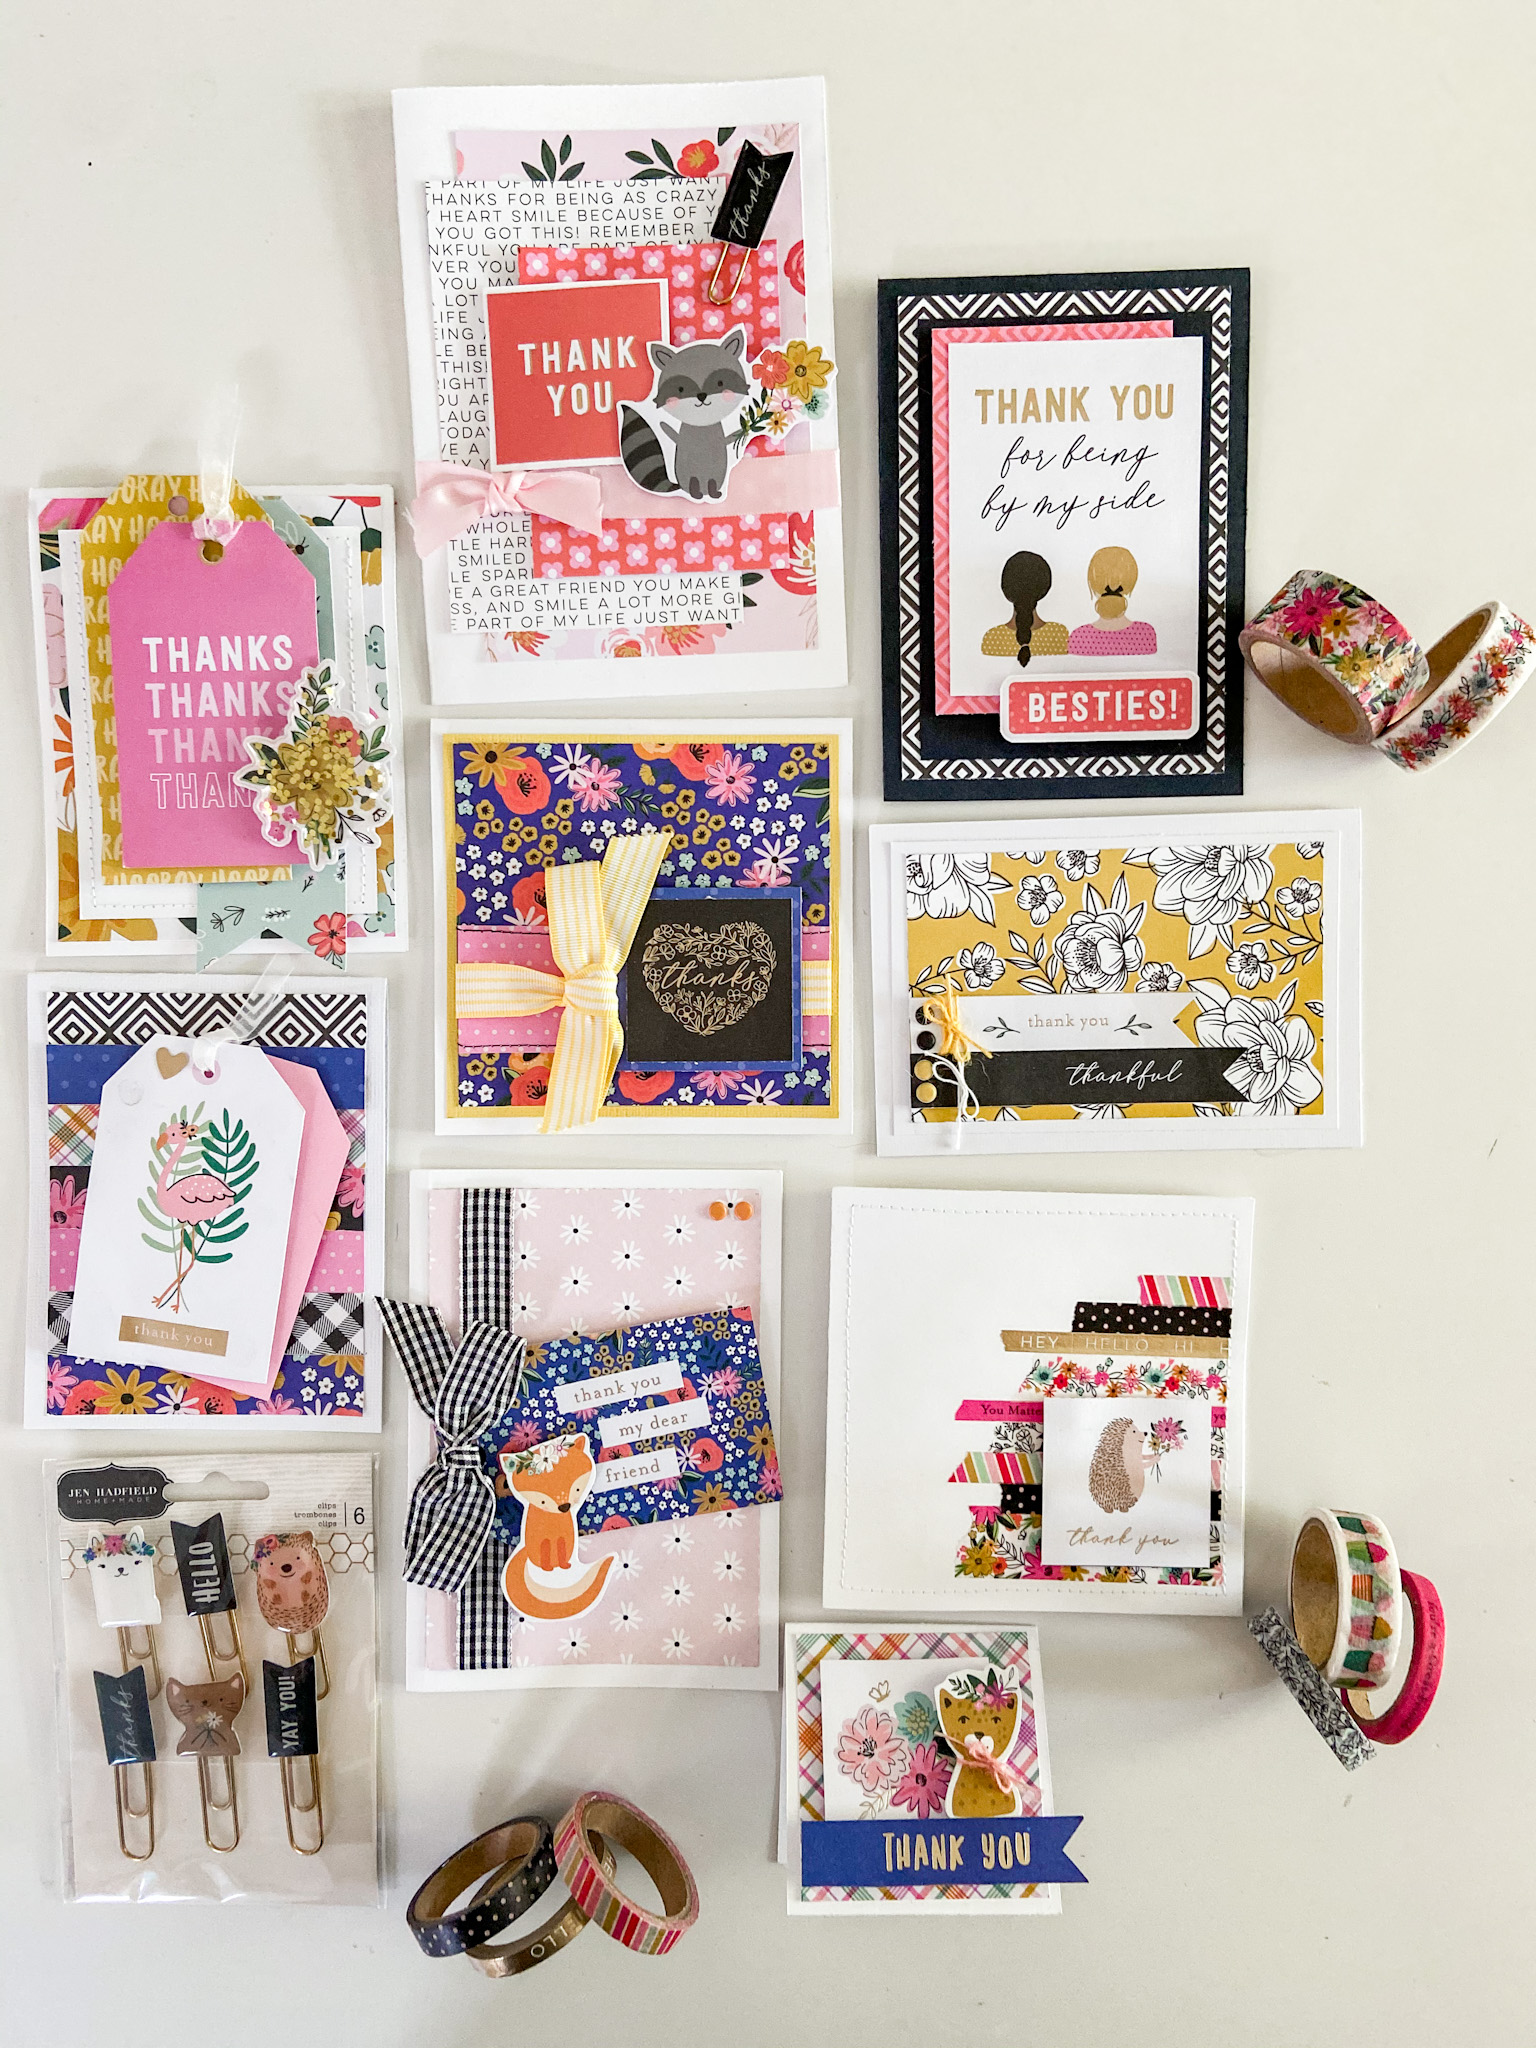 Make 9 adorable cards in under an hour! 9 cute cards with full instructions using the Hey! Hello! line now at JoAnn Stores!